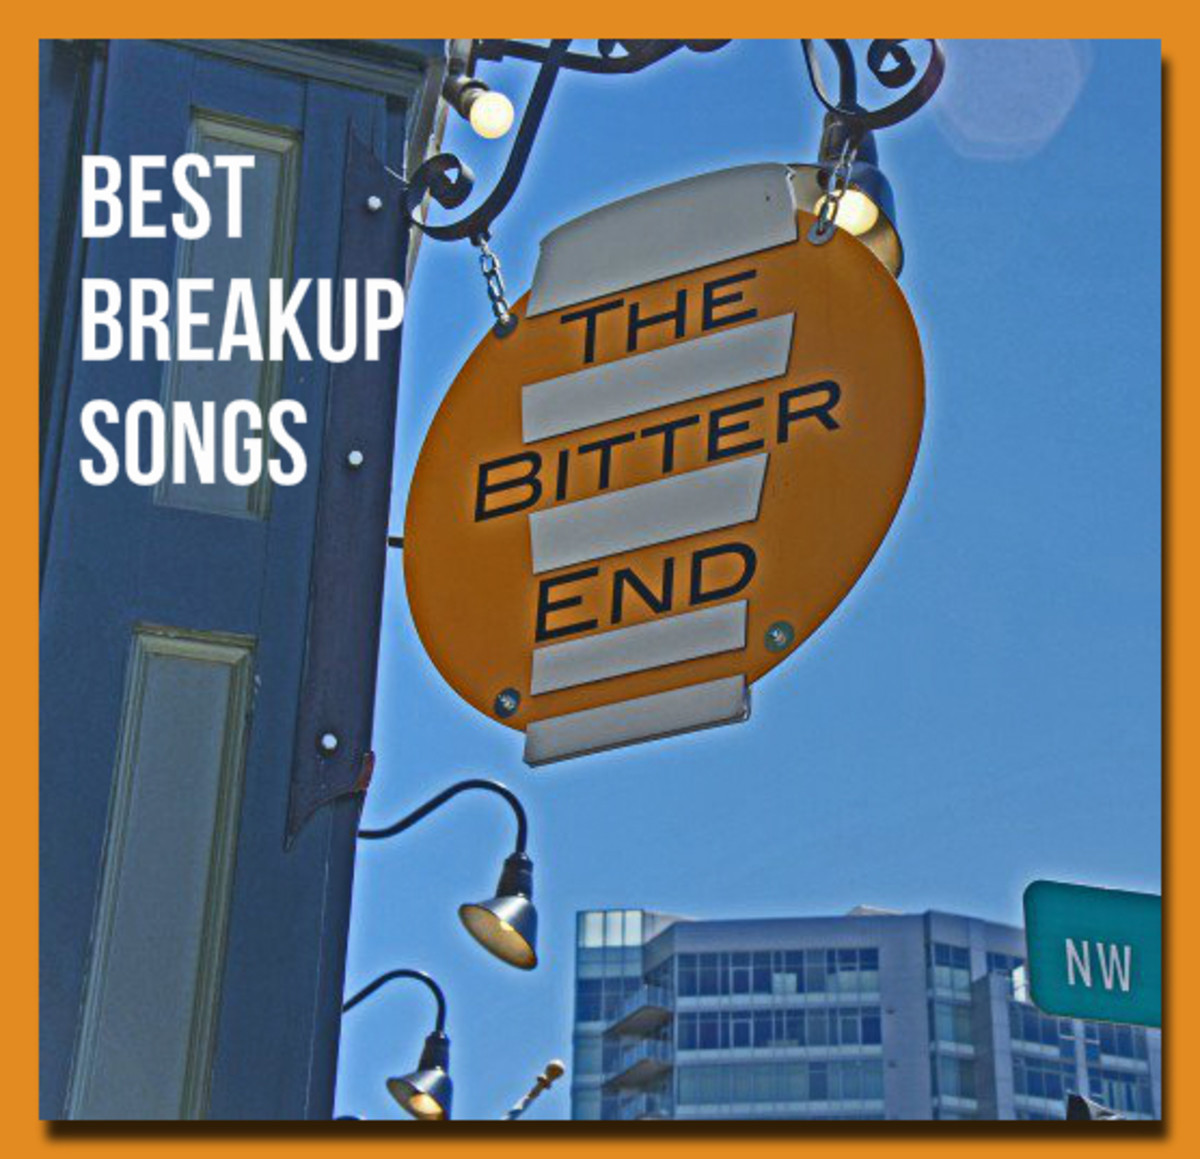 134 Songs About Breakups, Heartbreak, and Divorce